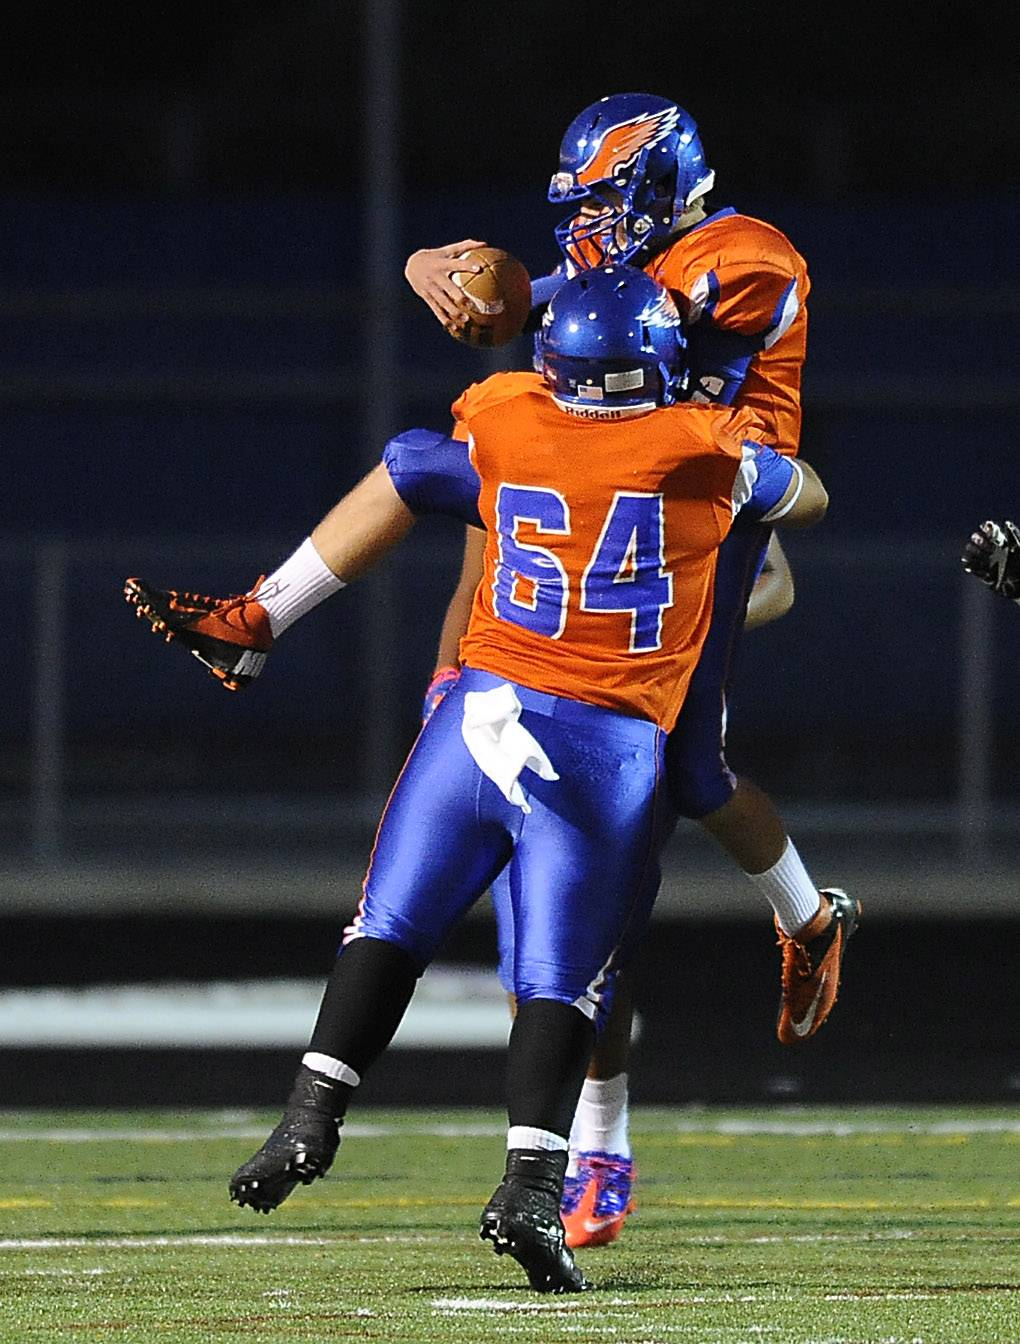 Hoffman Estates has experience on its side